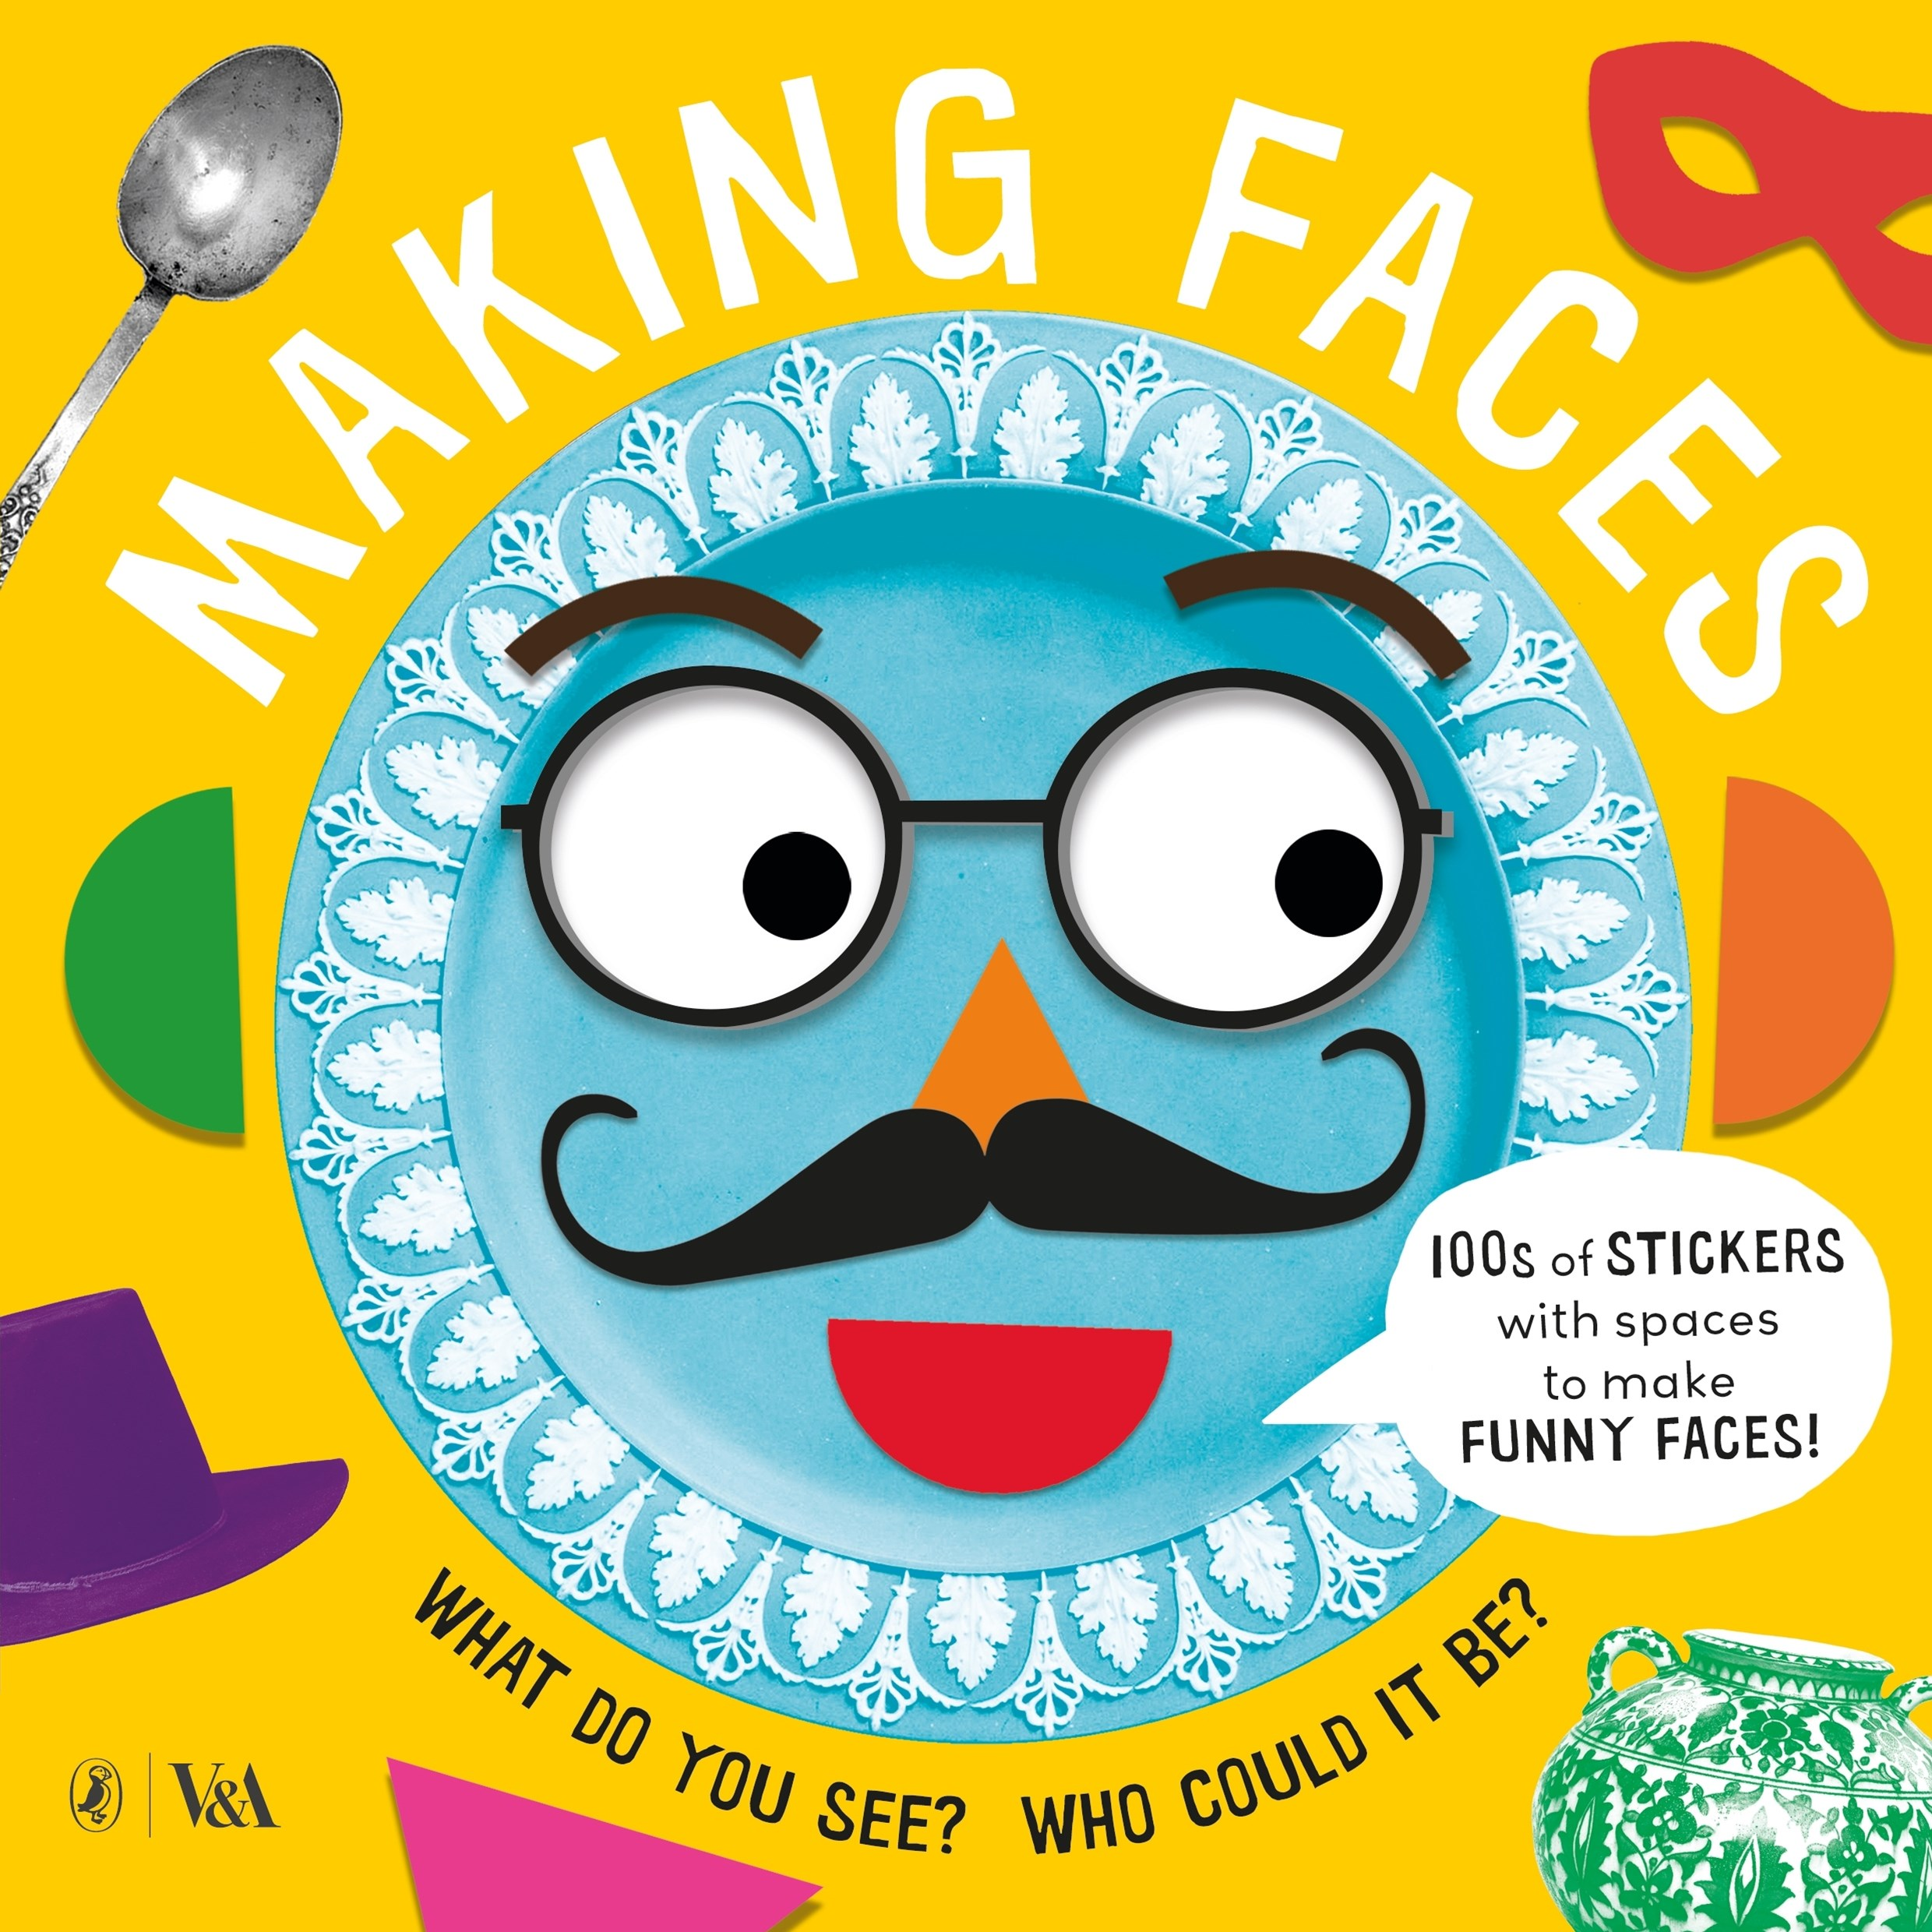 Making Faces: A Sticker Book